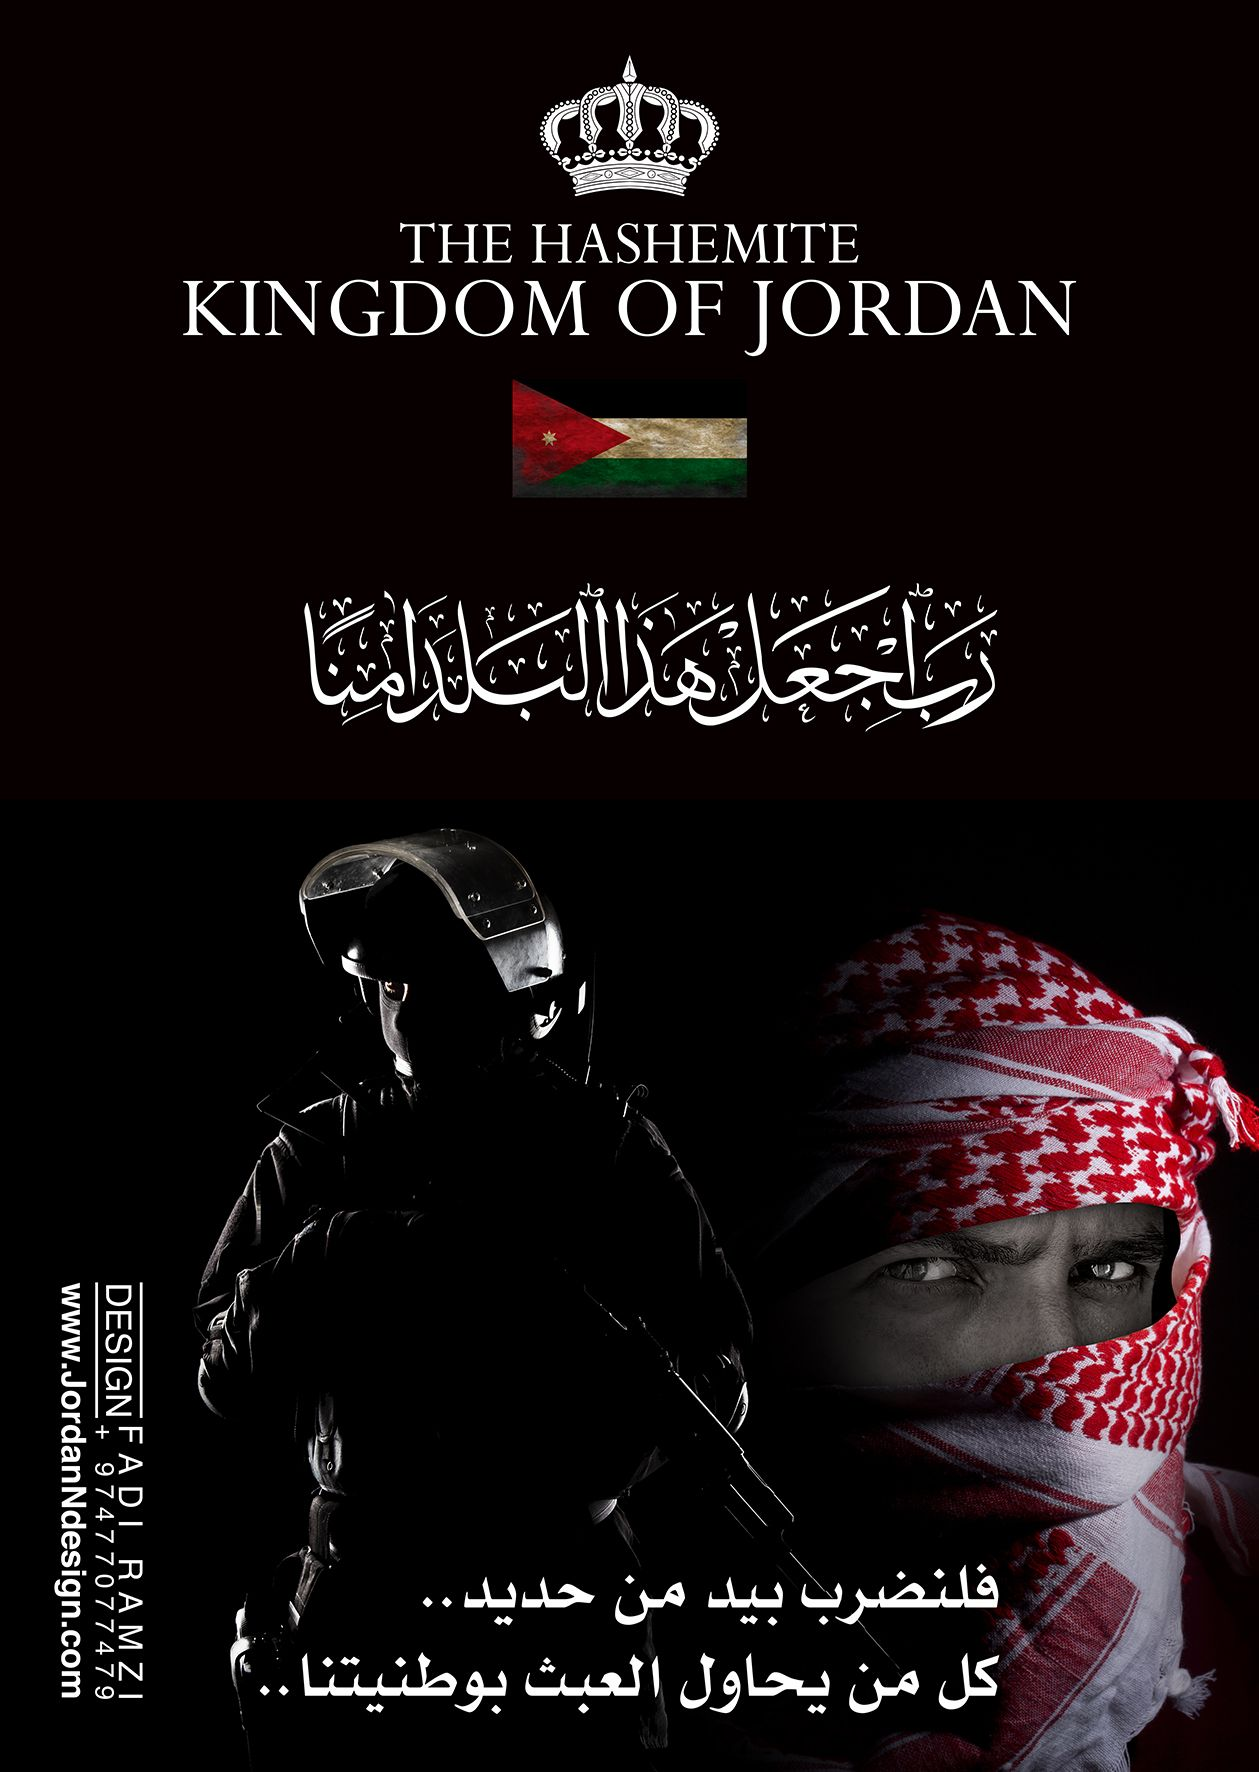 the hashemite kingdom of jordan